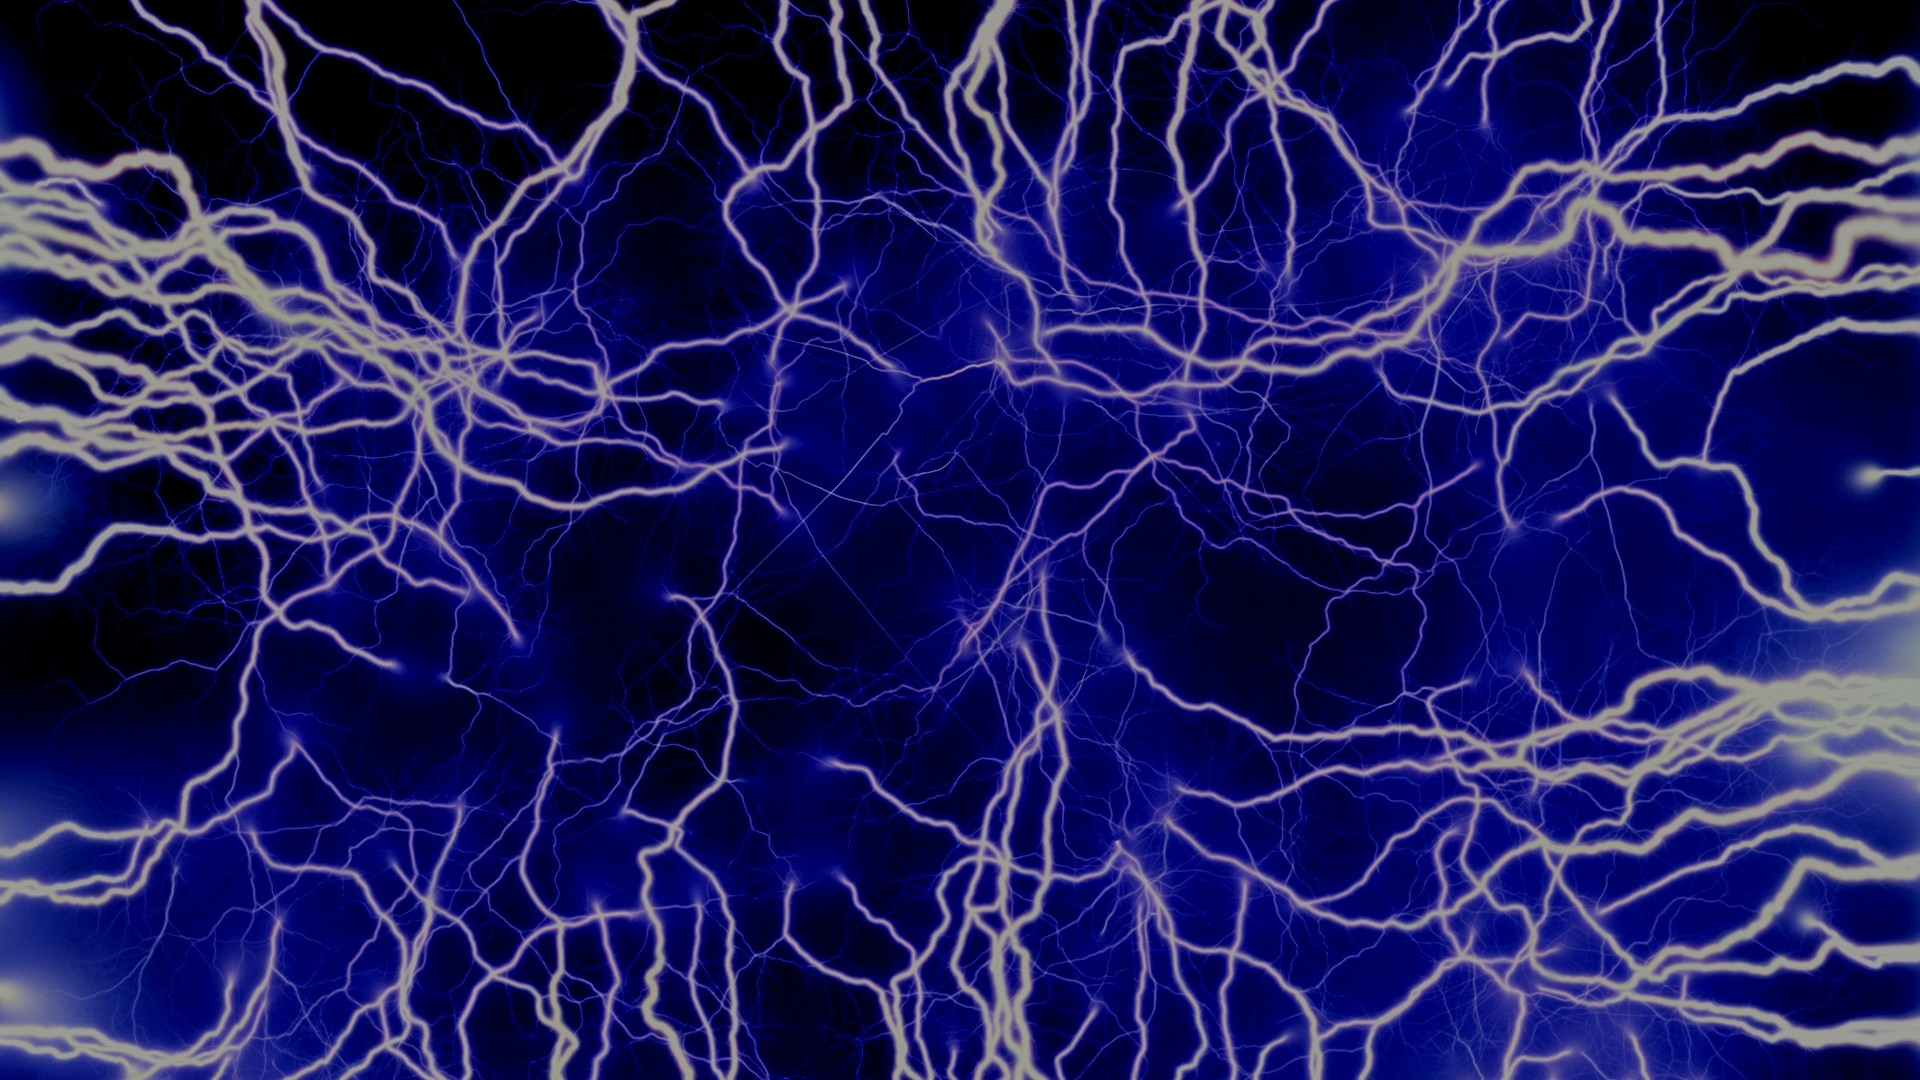 Electric Wallpaper Picture hd